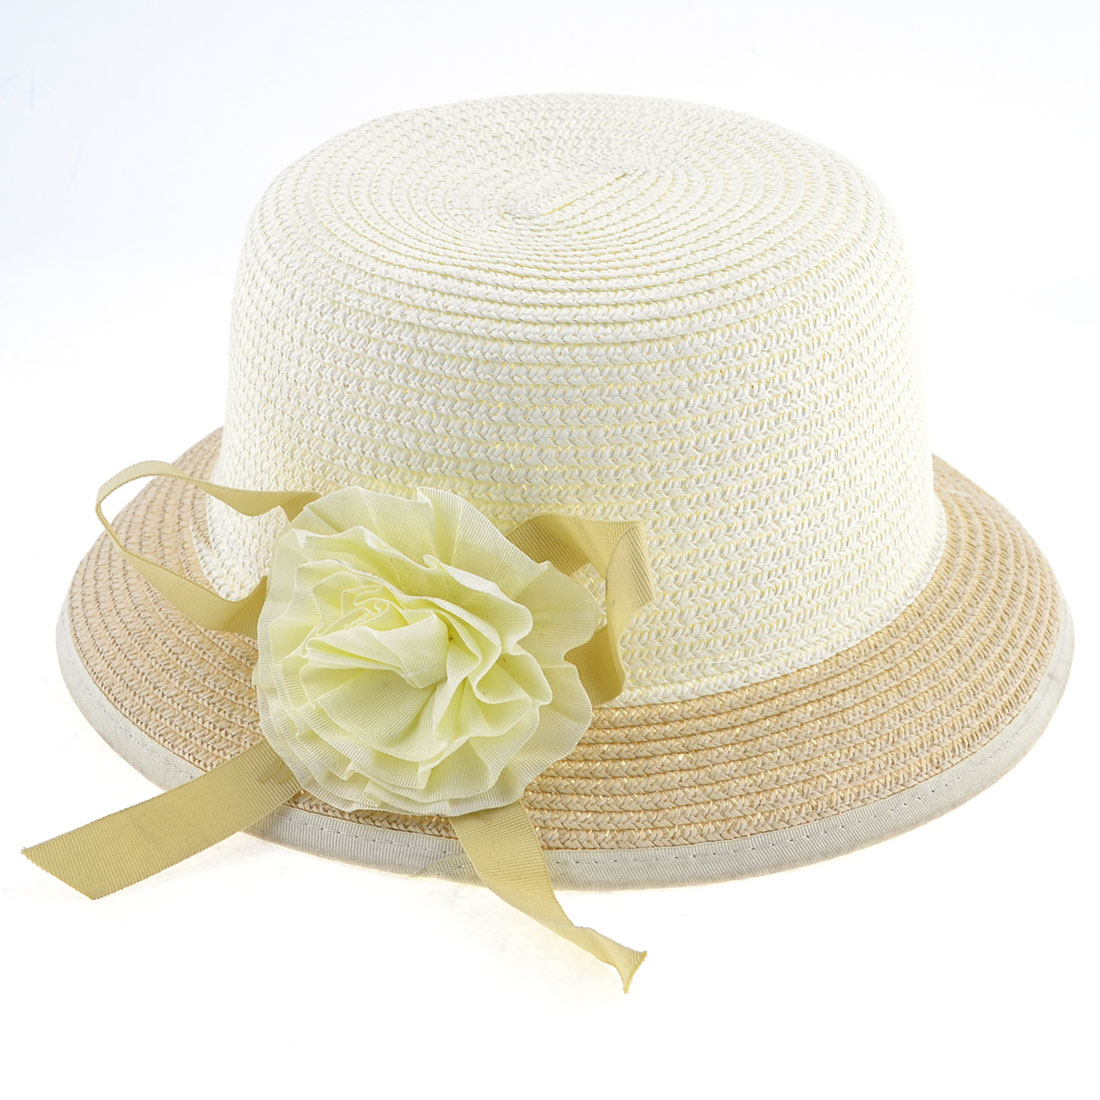 White Beige Flower Decoration Fedora Hat Cap for Girls Ladies